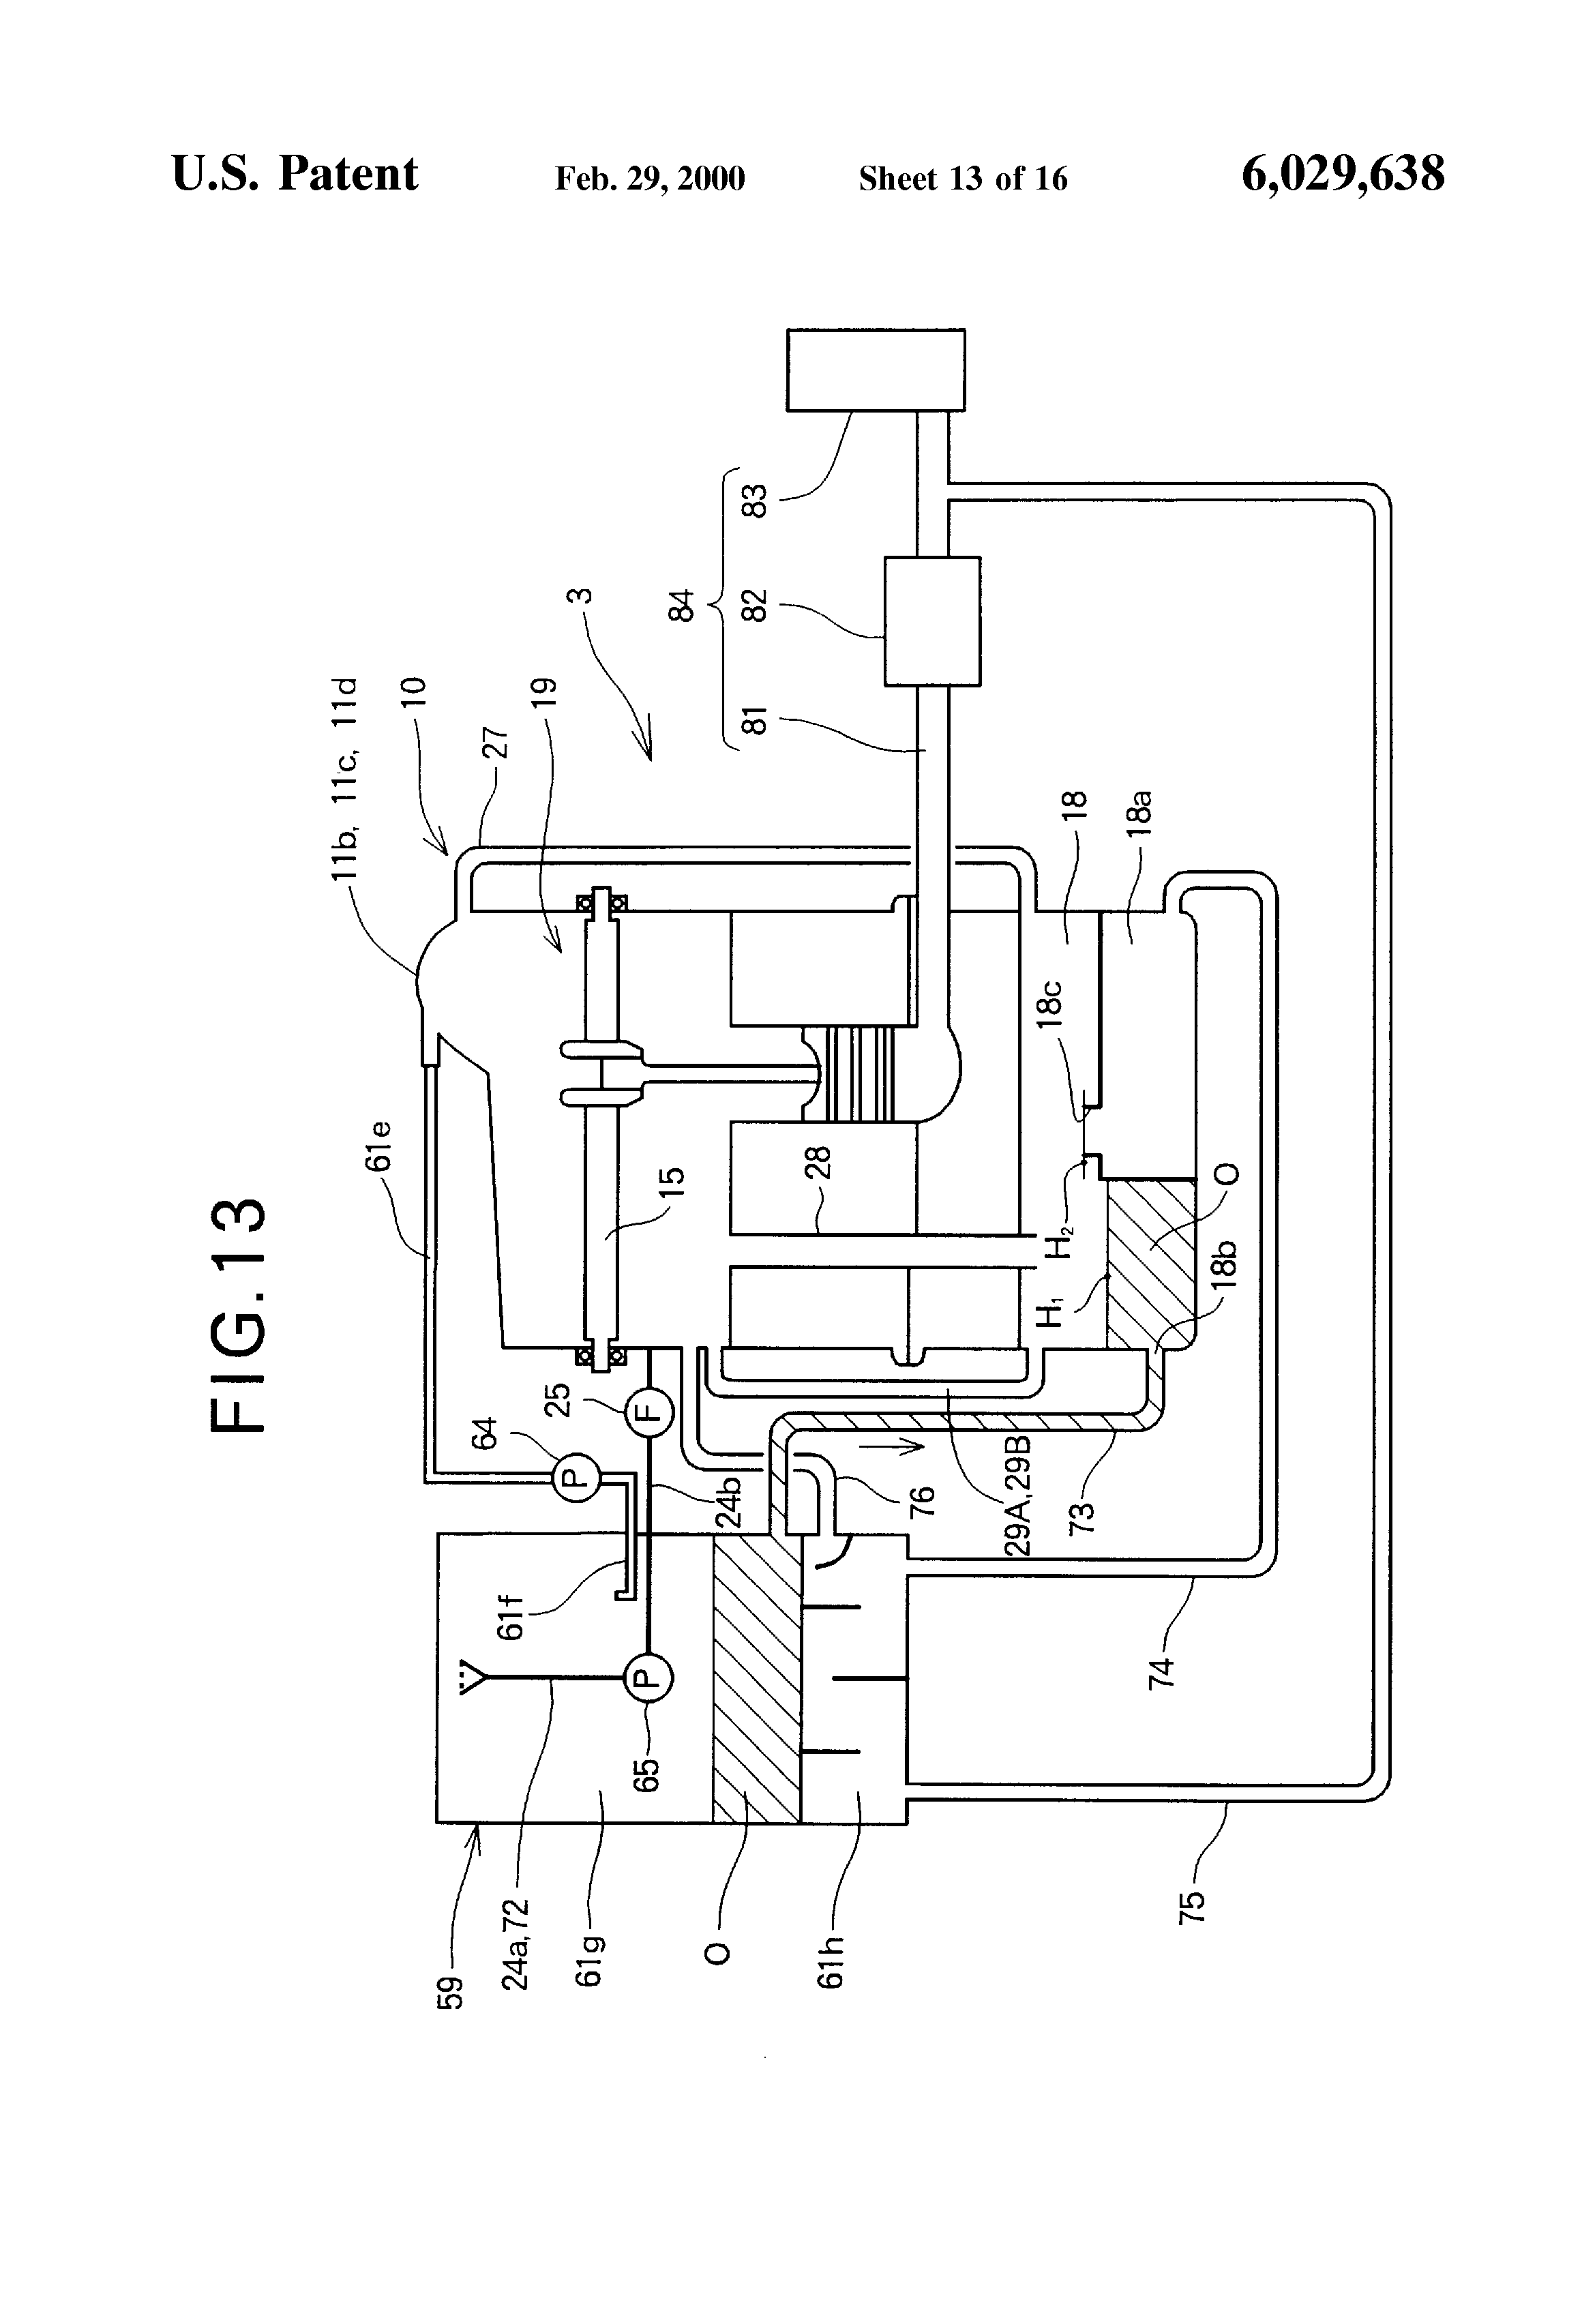 Internal Combustion Engine With Dry Sump Lubricating System